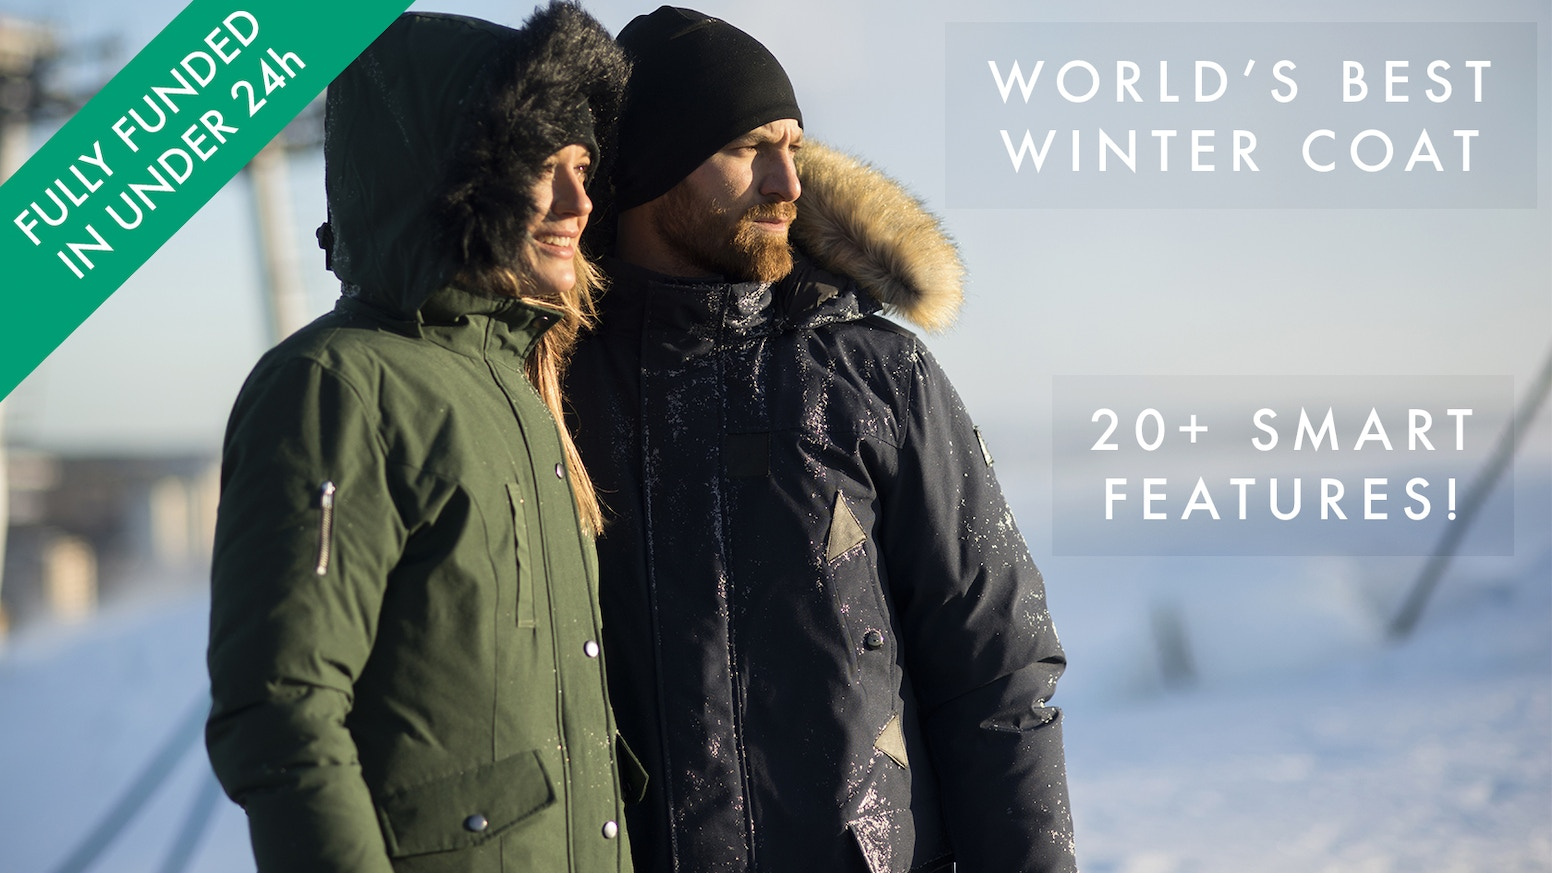 The first winter coat with 20+ built in smart features: Wi-Fi, Powerbank, Gloves and much more!